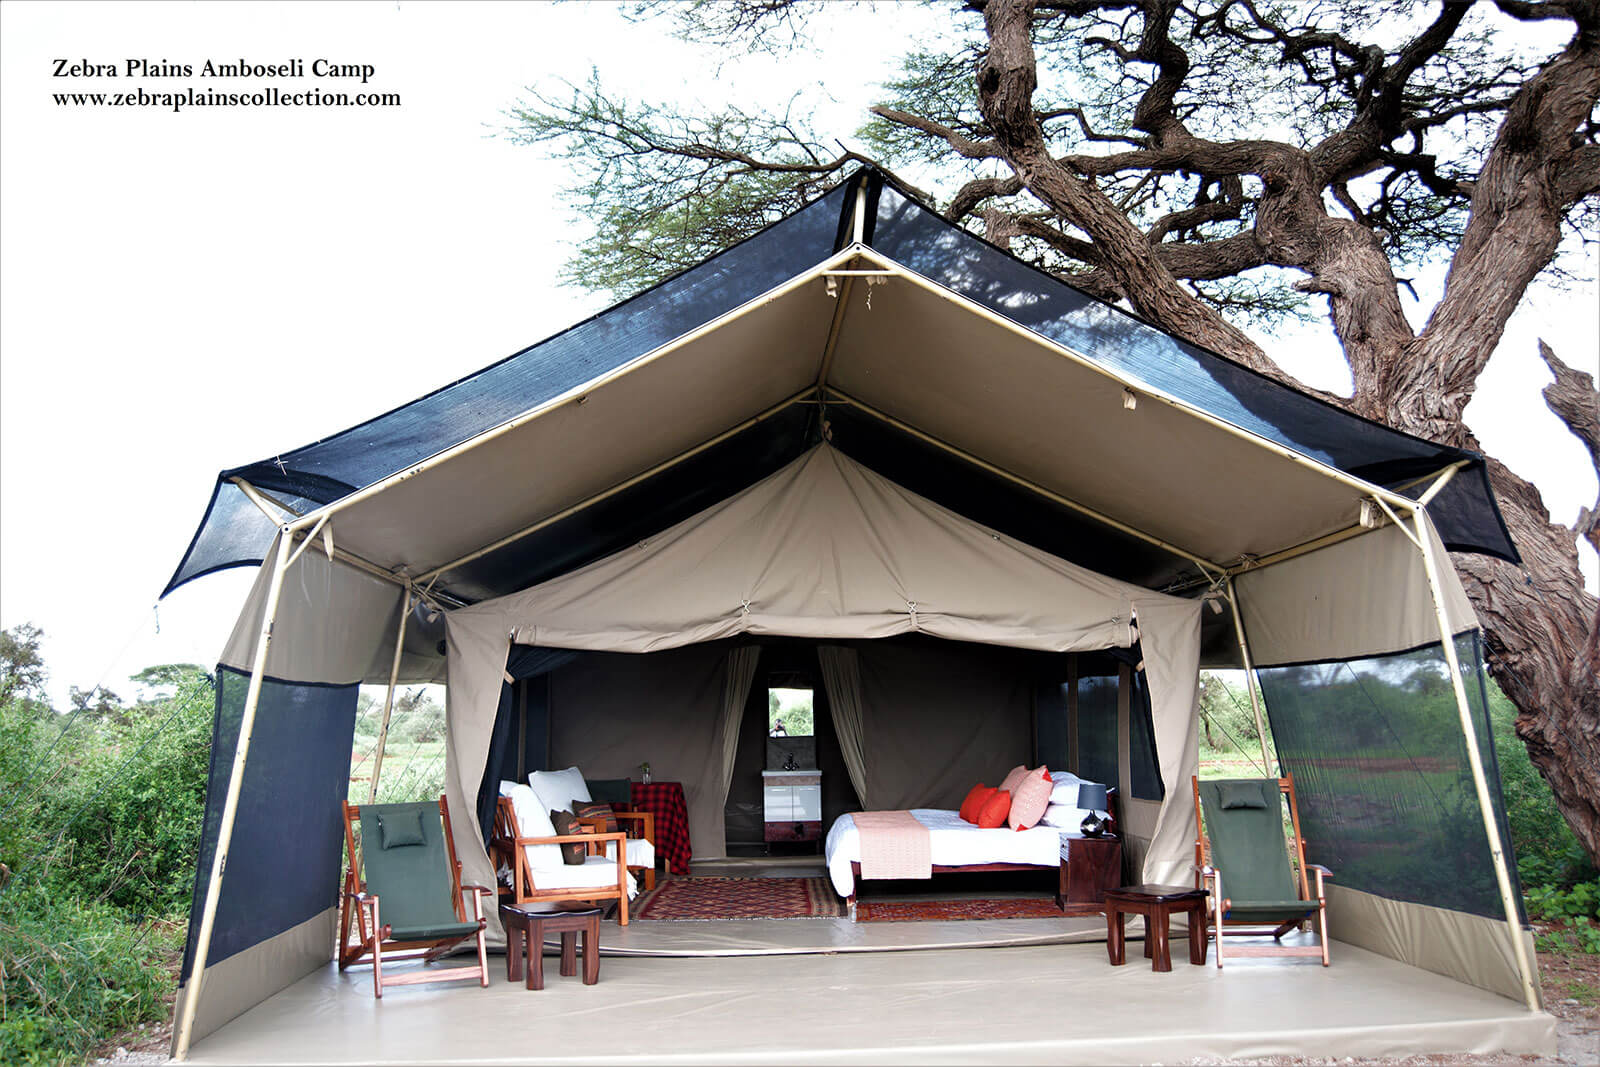 Amboseli zebra plains camp